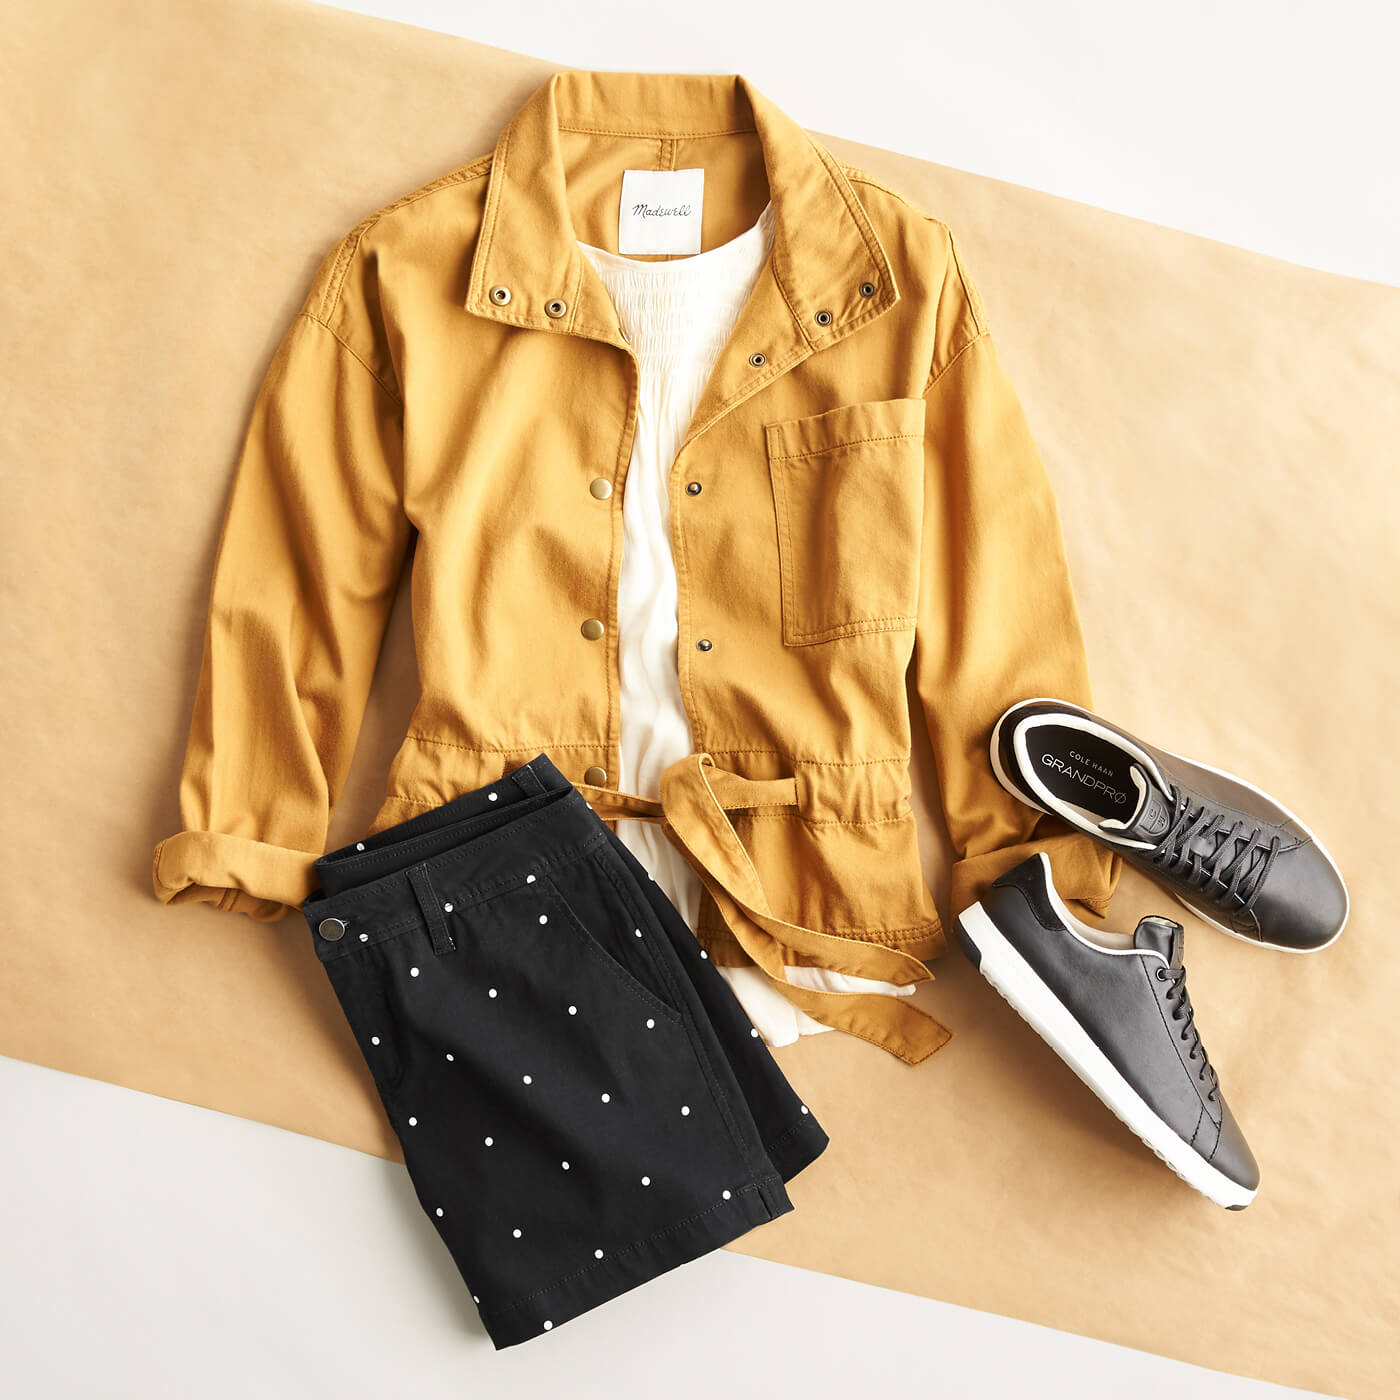 yellow jacket, embroidered shorts and sneakers